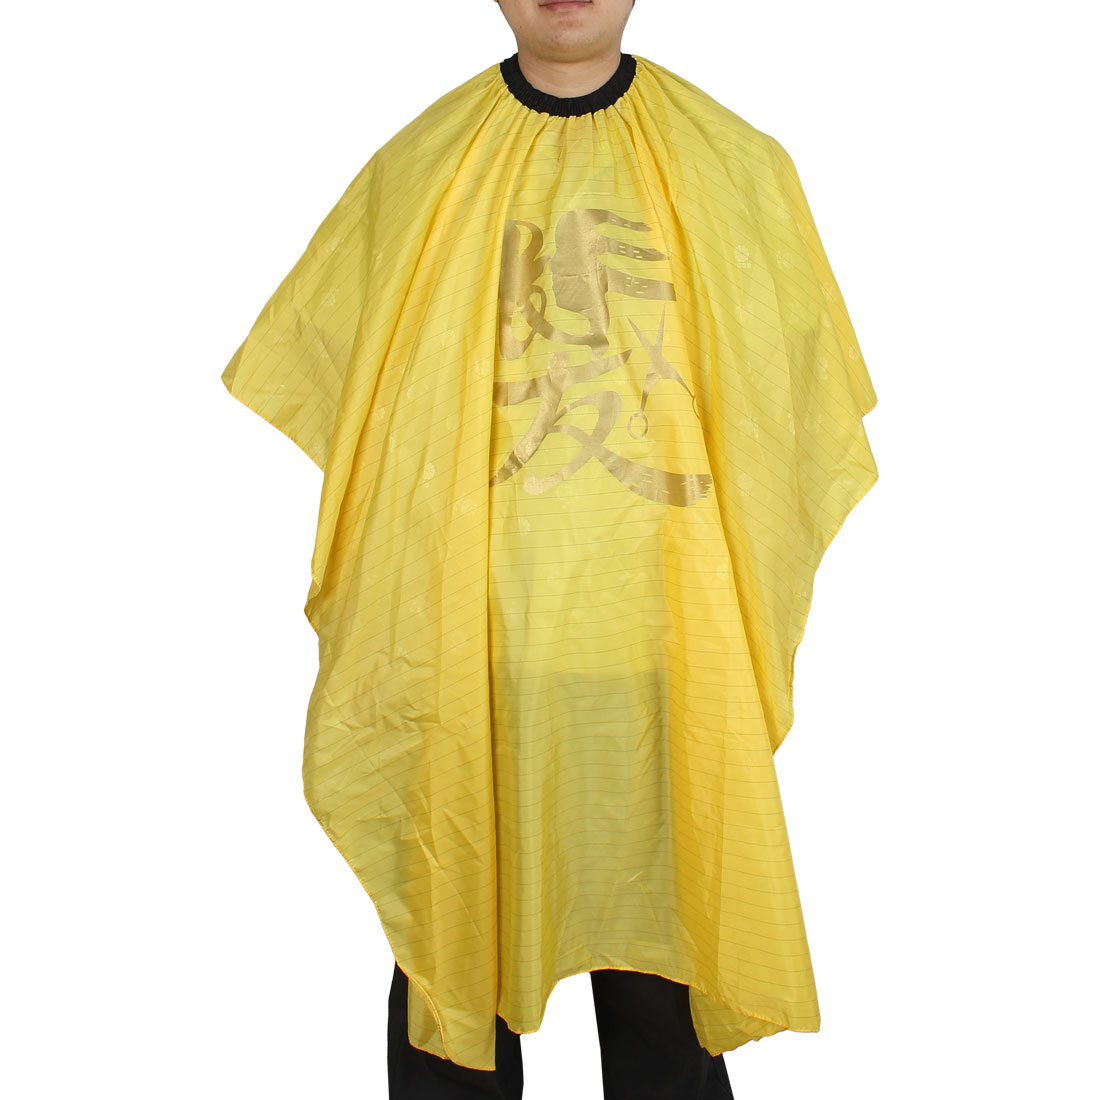 Hair Salon Barber Shop Shampoo Hairstyle Haircut Cape Apron Yellow